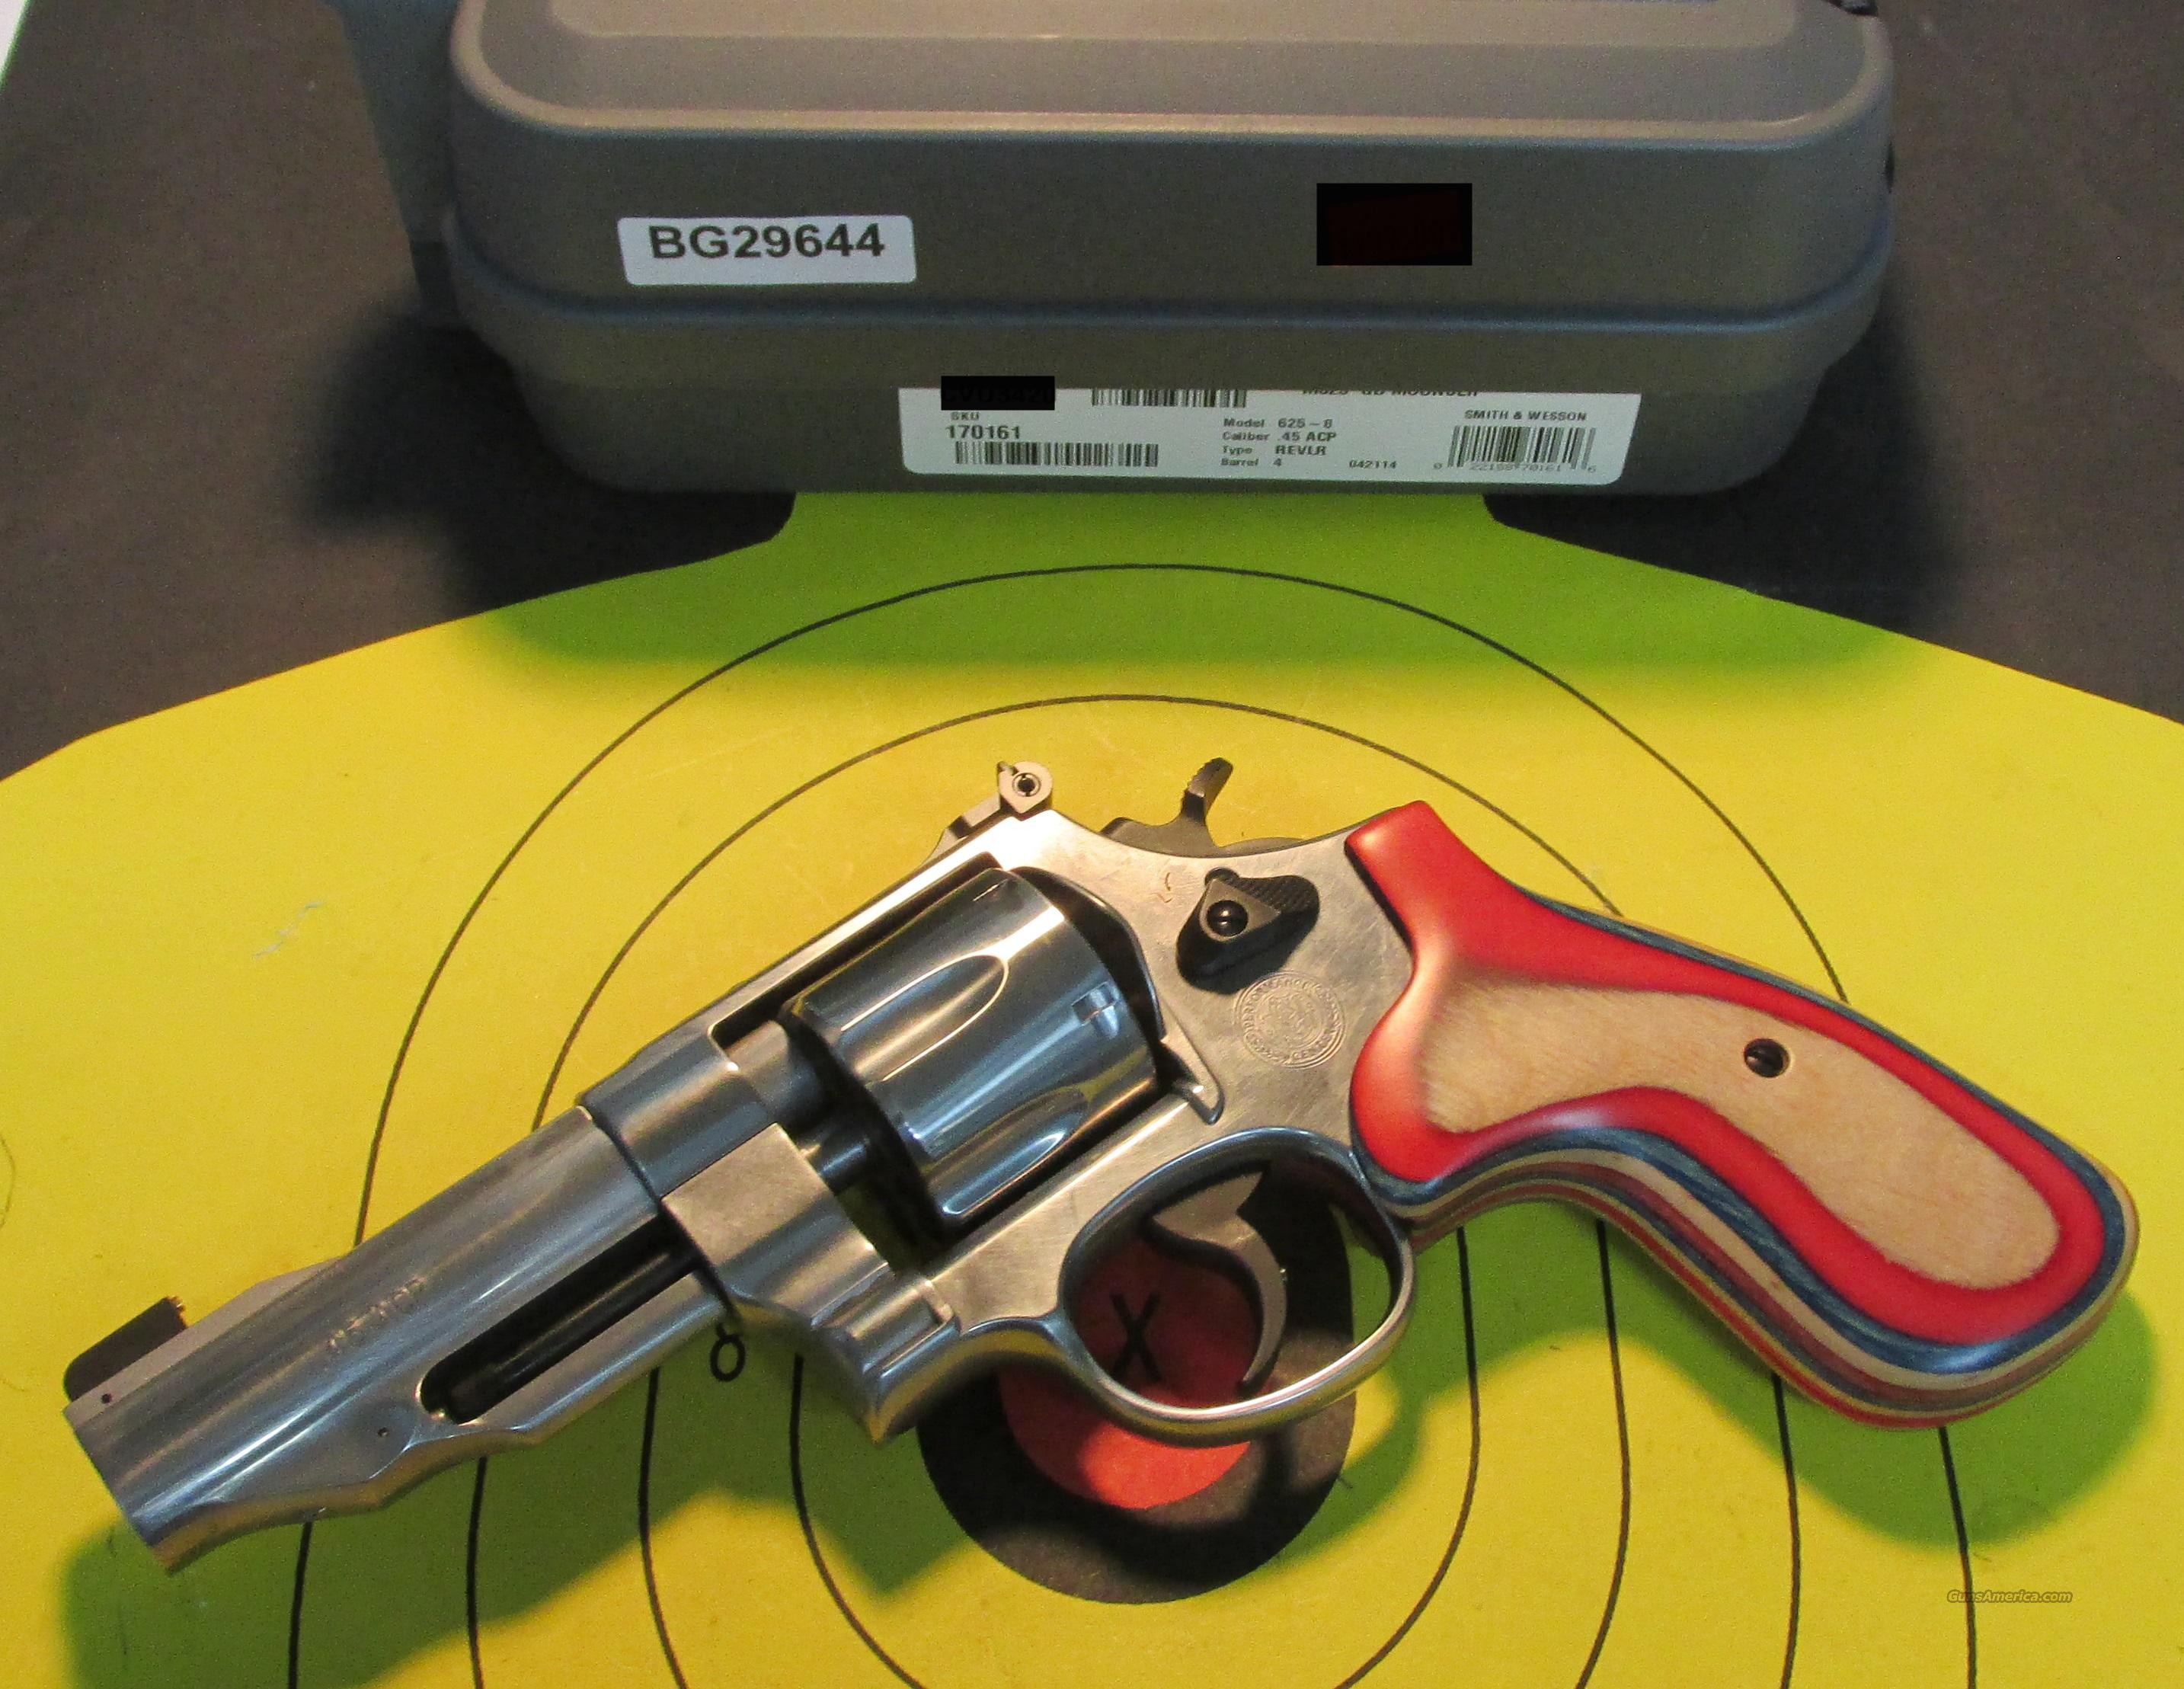 SMITH & WESSON 625 PERFORMANCE CENTER 45ACP REVOLVER (170161)  Guns > Pistols > Smith & Wesson Revolvers > Performance Center